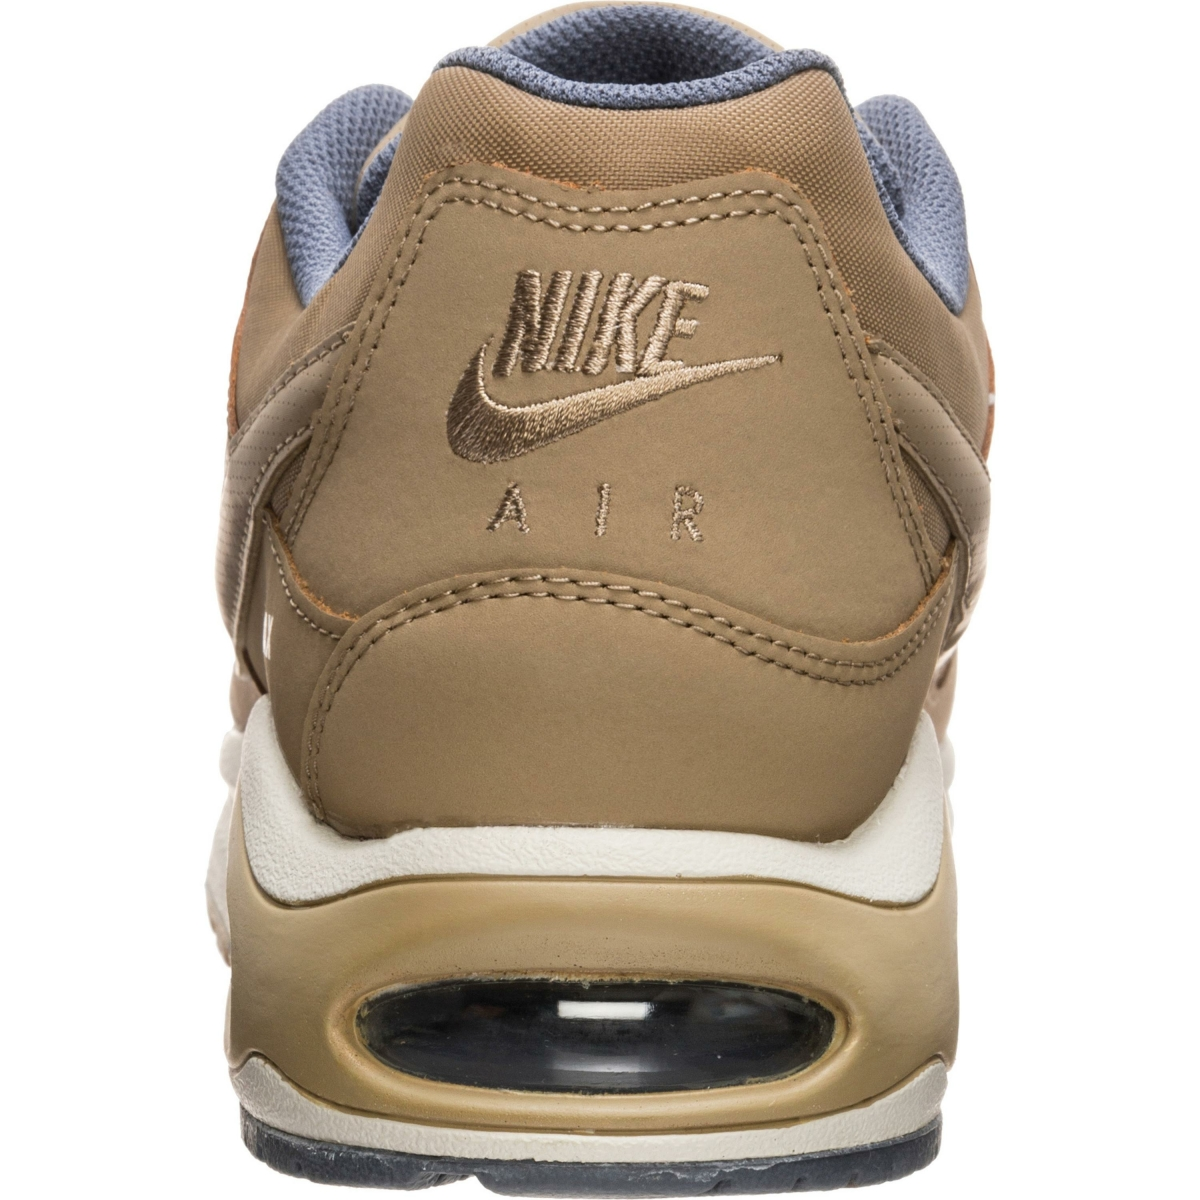 Nike Air Max Command in braun 629993 200 | everysize